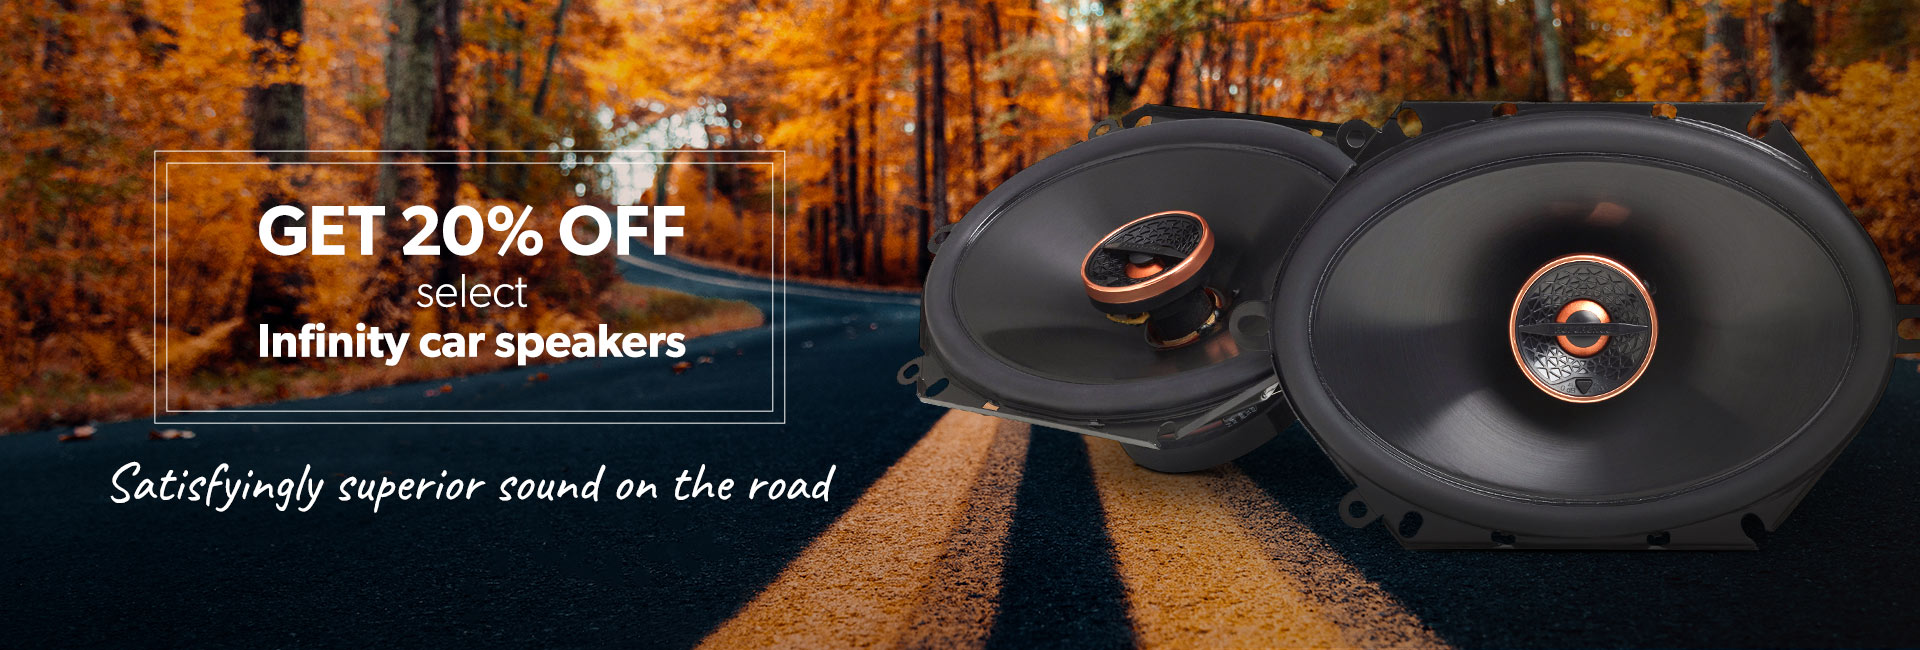 Get 20% off select Infinity car speakers